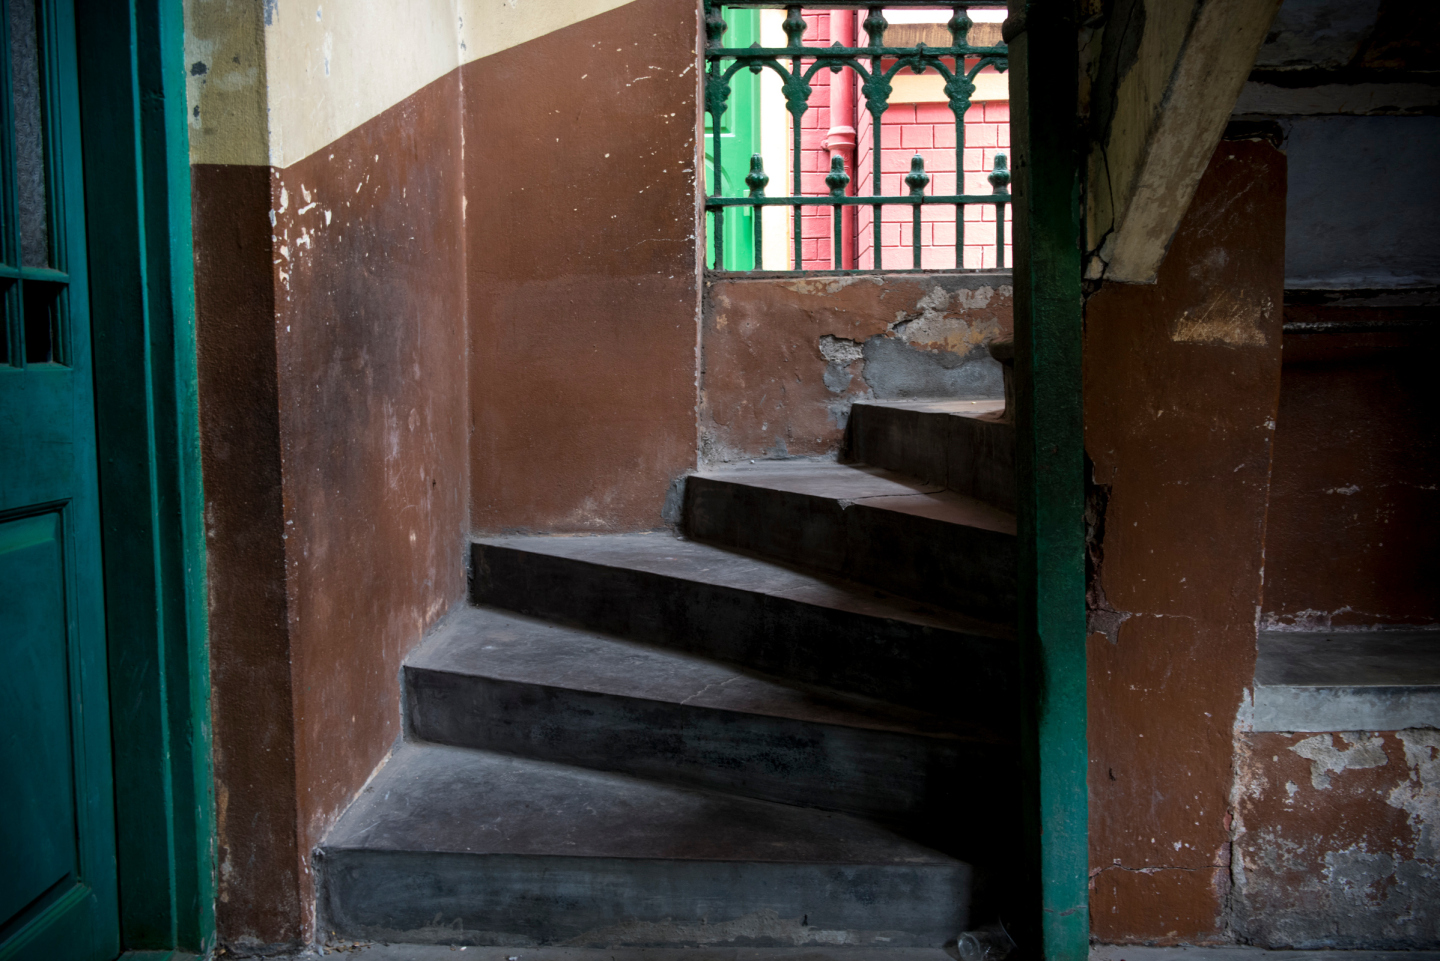 KOLKATA, INDIA 1 SEPT: Images from the Saint Teresa School, located about 200 meters from the Mother House of the Missionaries of Charity. Mother Teresa taught at the school, and began her first efforts at serving the poor from a stairwell within the school. She provided medicine for those who were unable to afford it. PICTURED: The actual stairs that Mother Teresa would sit upon and distribute medicine to those in need.